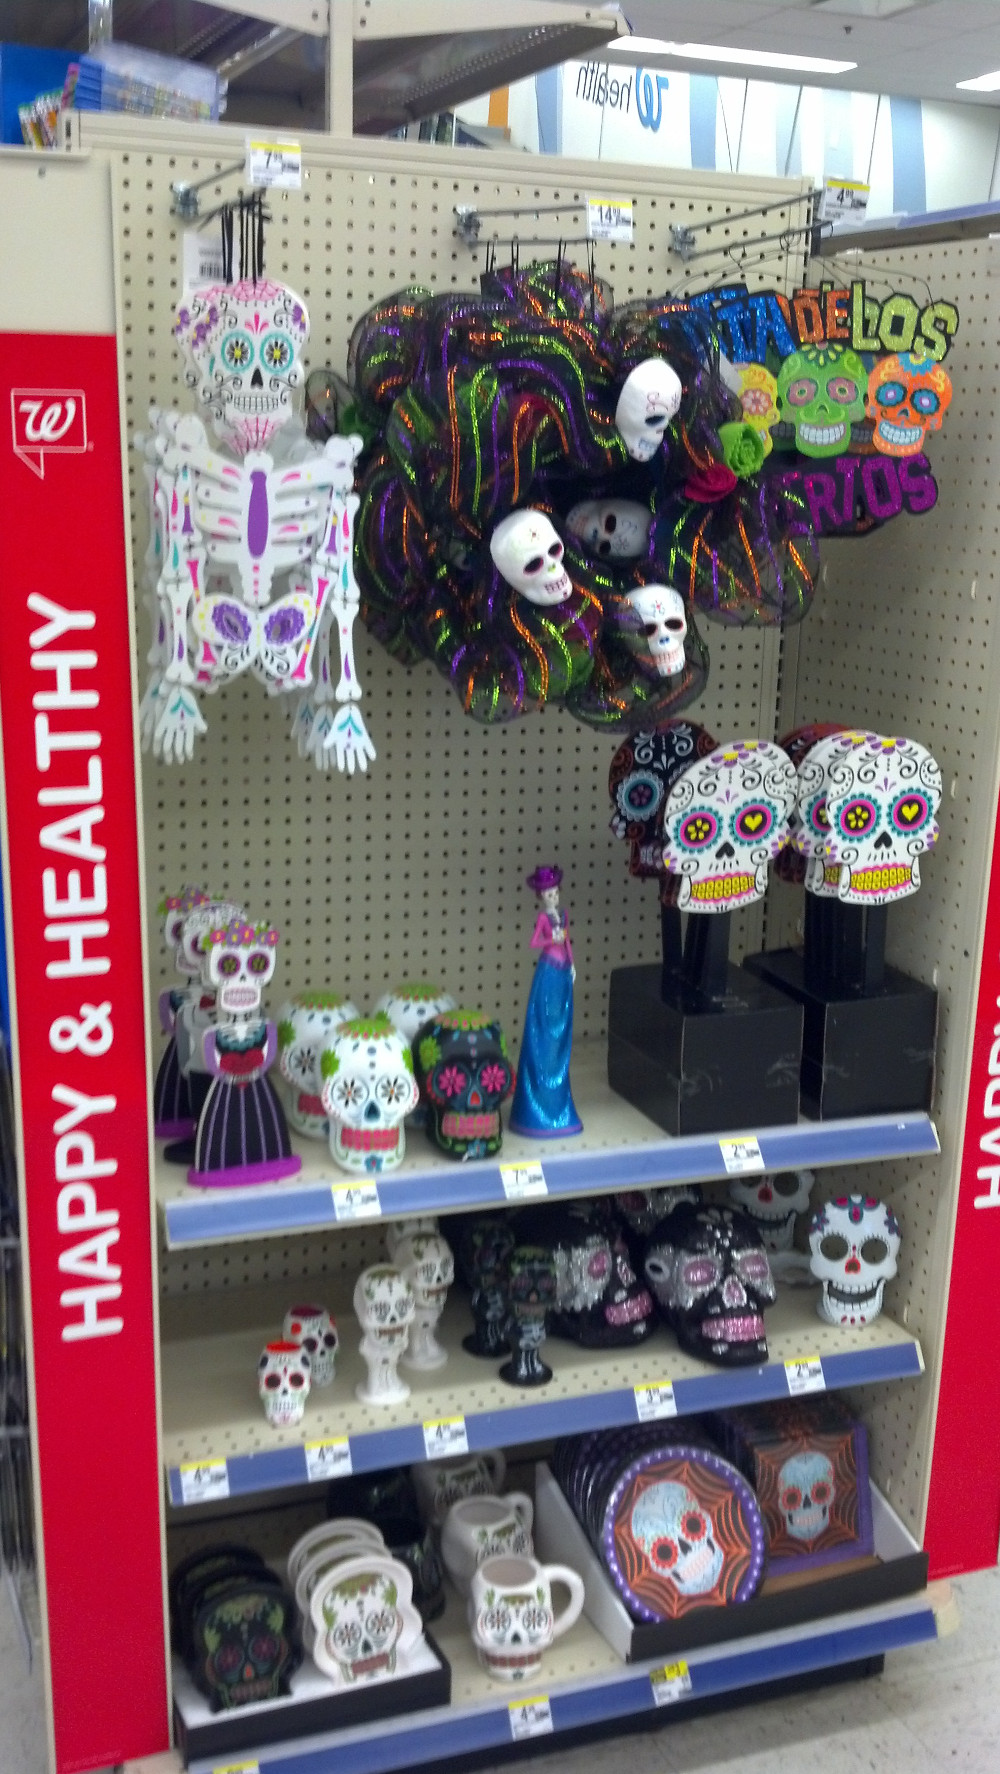 walgreens halloween day of the dead decorations - Walgreens Halloween Decorations